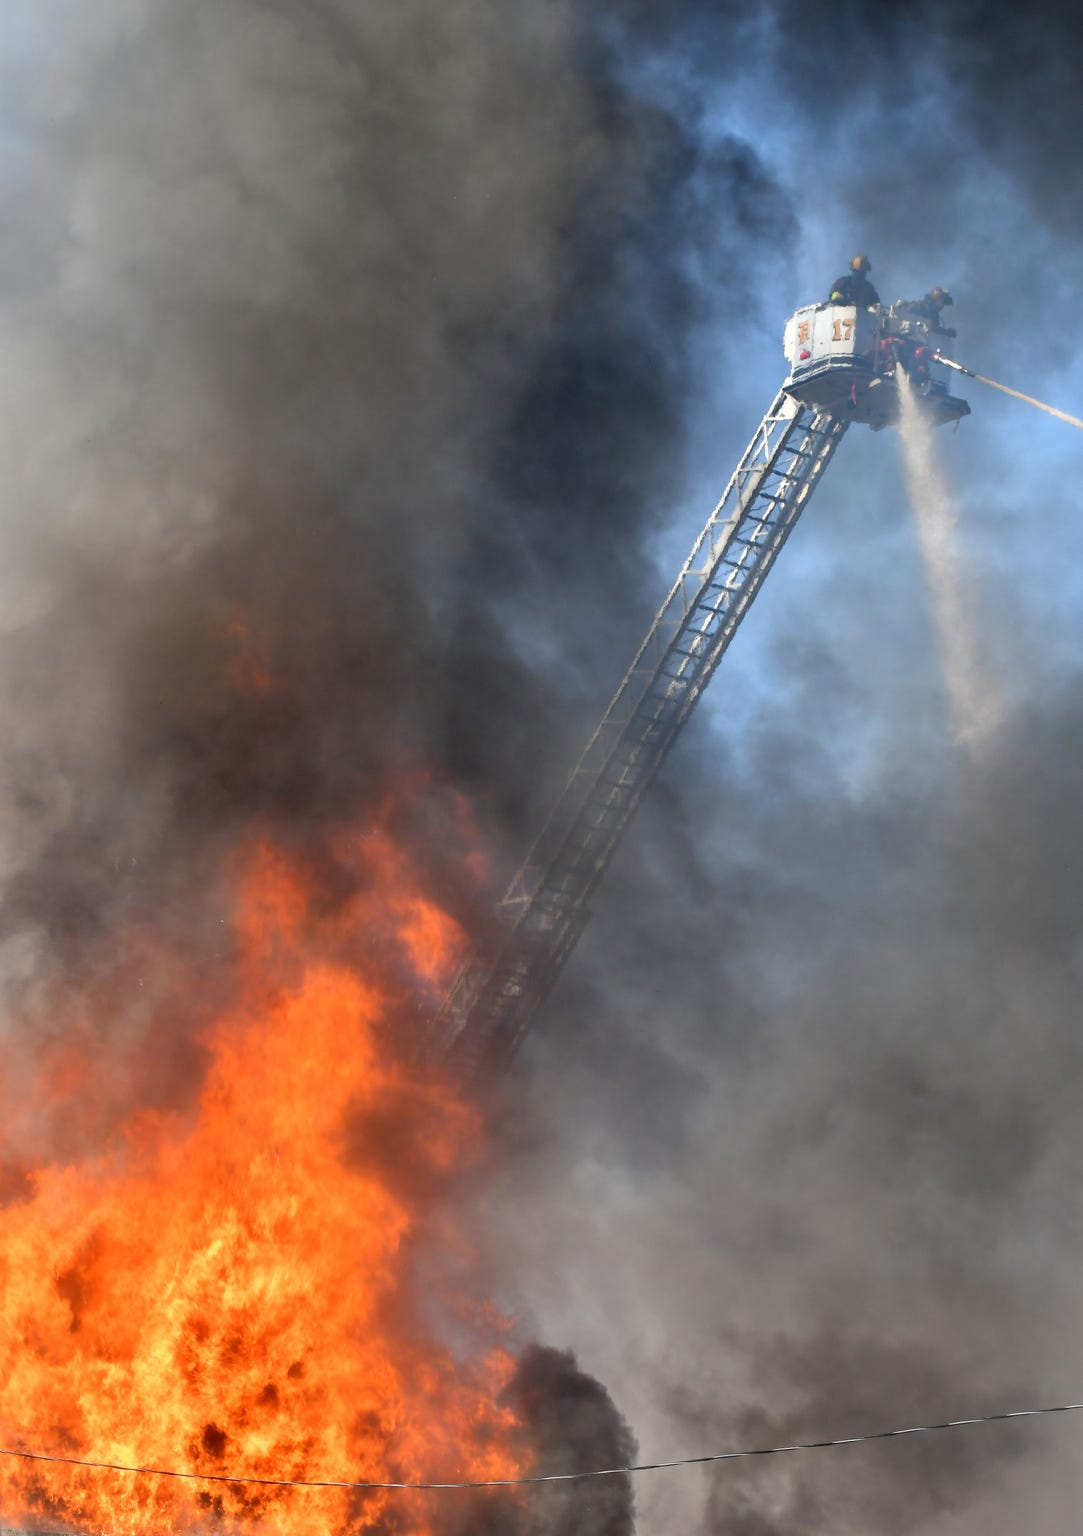 The average number of structure fires annually in Detroit has declined by 42percent since 2014, according to fire department data.